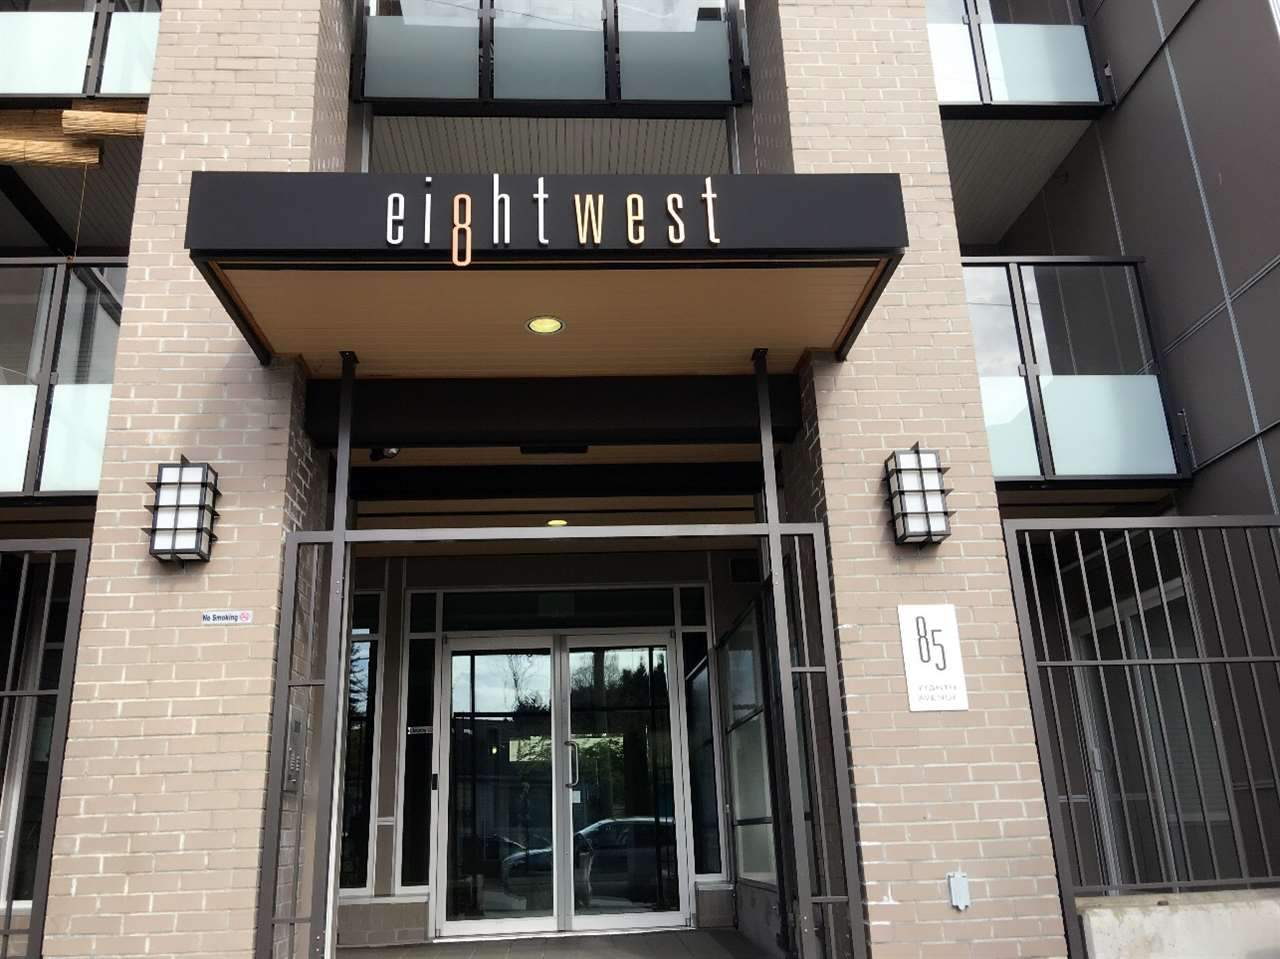 Move in condition south facing 651 sq ft. 1 bedroom + den (big enough for 2nd bedroom) bright & spacious layout at 8 West features a separate entrance off the street for a townhouse feel, covered good size patio, granite countertops, stainless steel appliances, beveled edge laminate floors, large kitchen island & so much more. Located in the heart of New Westminster's luxurious Glenbrook North neighbourhood; amenities within walking distance includes Safeway, Starbucks, Queen's Park Arena, Canada Games Pool & more! This sought after 8 West Development was built in 2013 & comes with balance of New Home 2-5-10 warranty. Extra large handicap Parking stall and big size locker